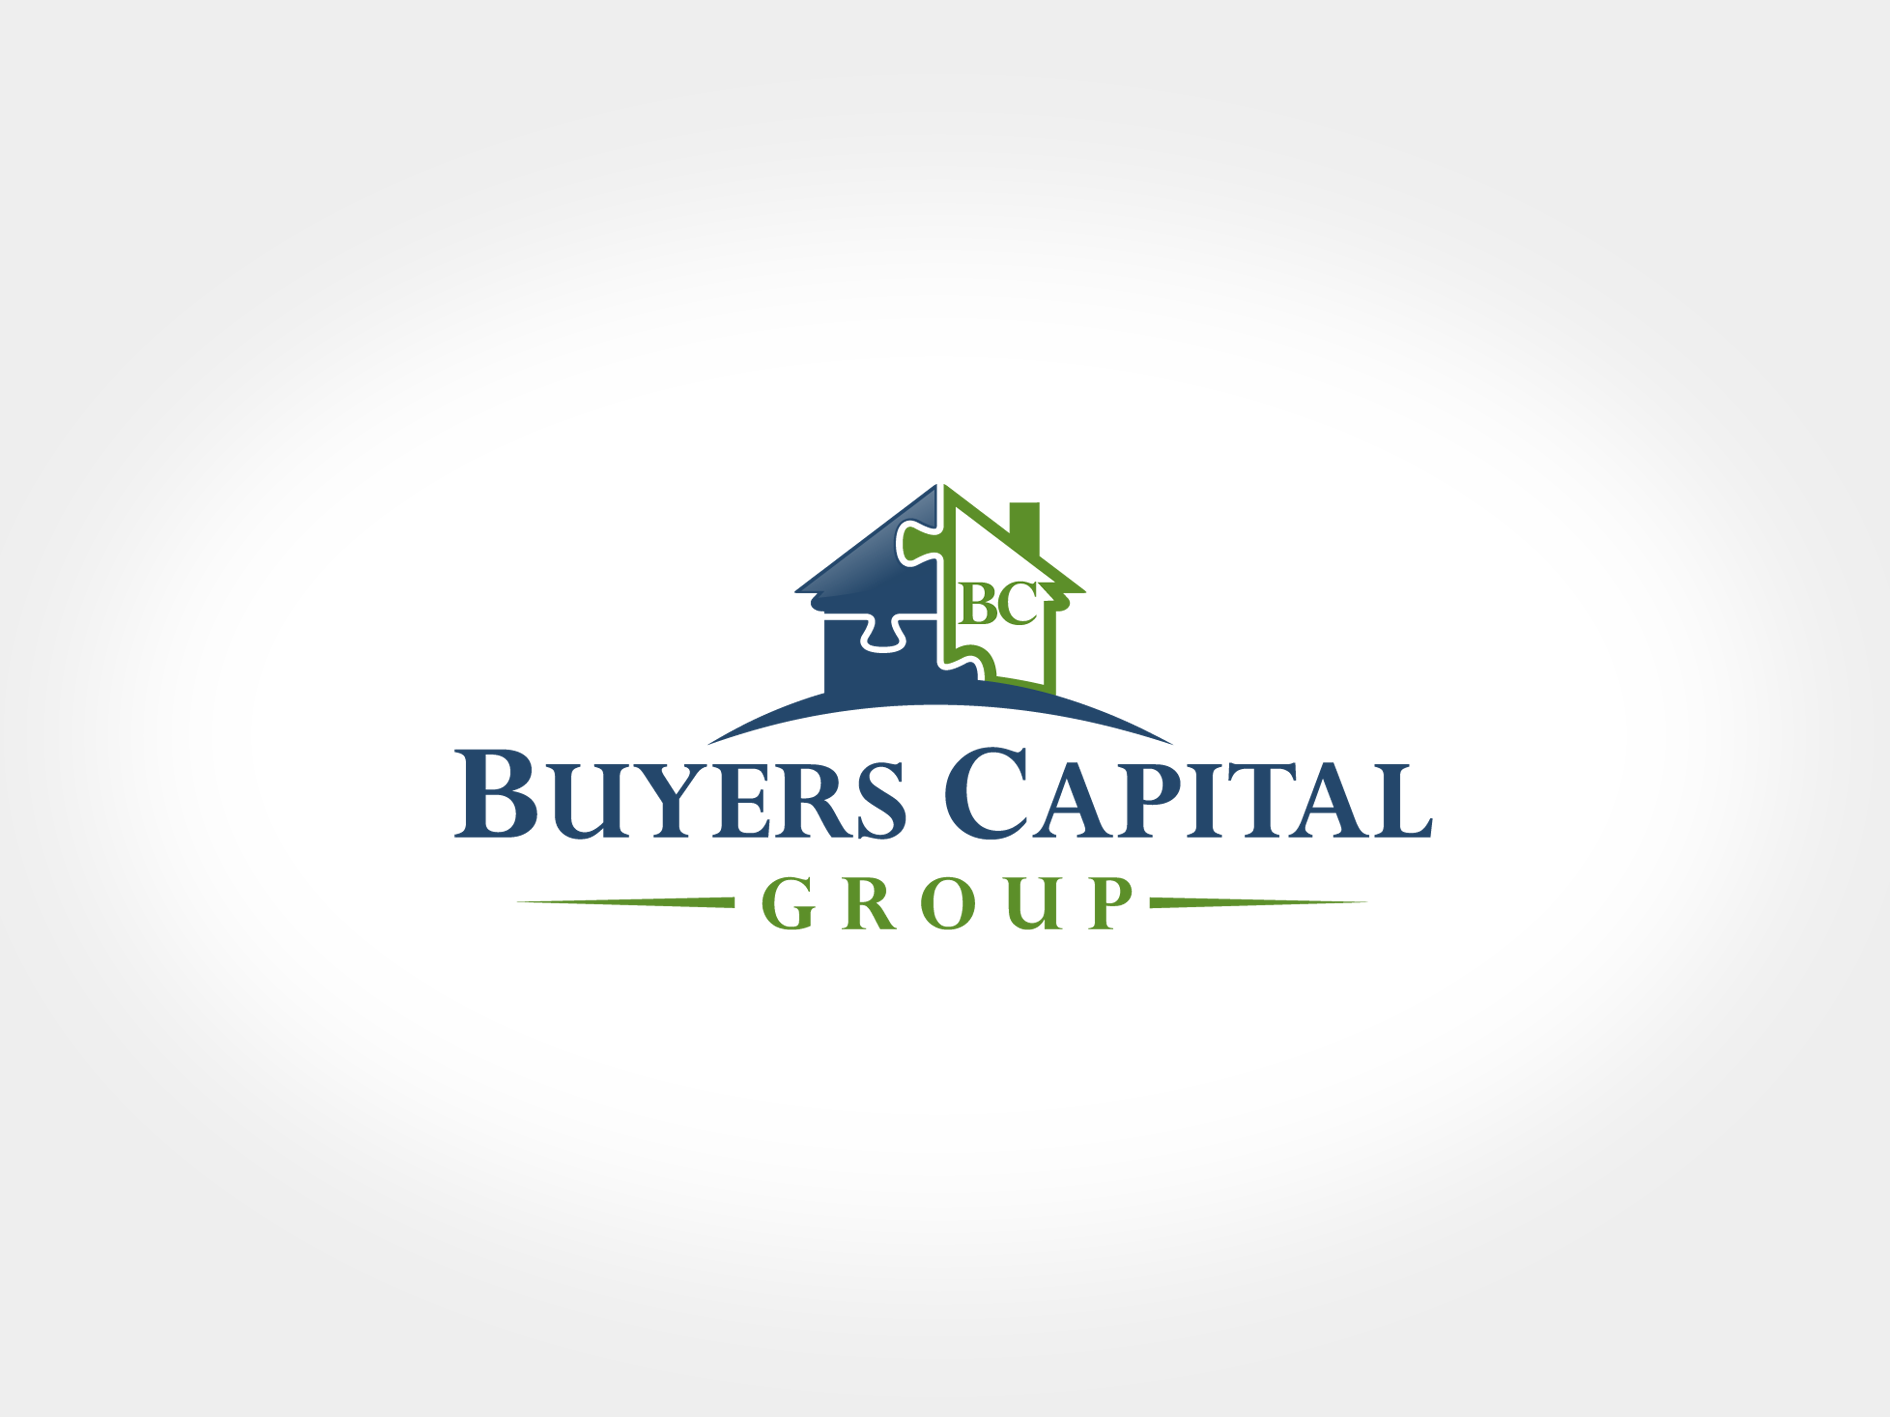 Create the next logo and business card for Buyers Capital Group